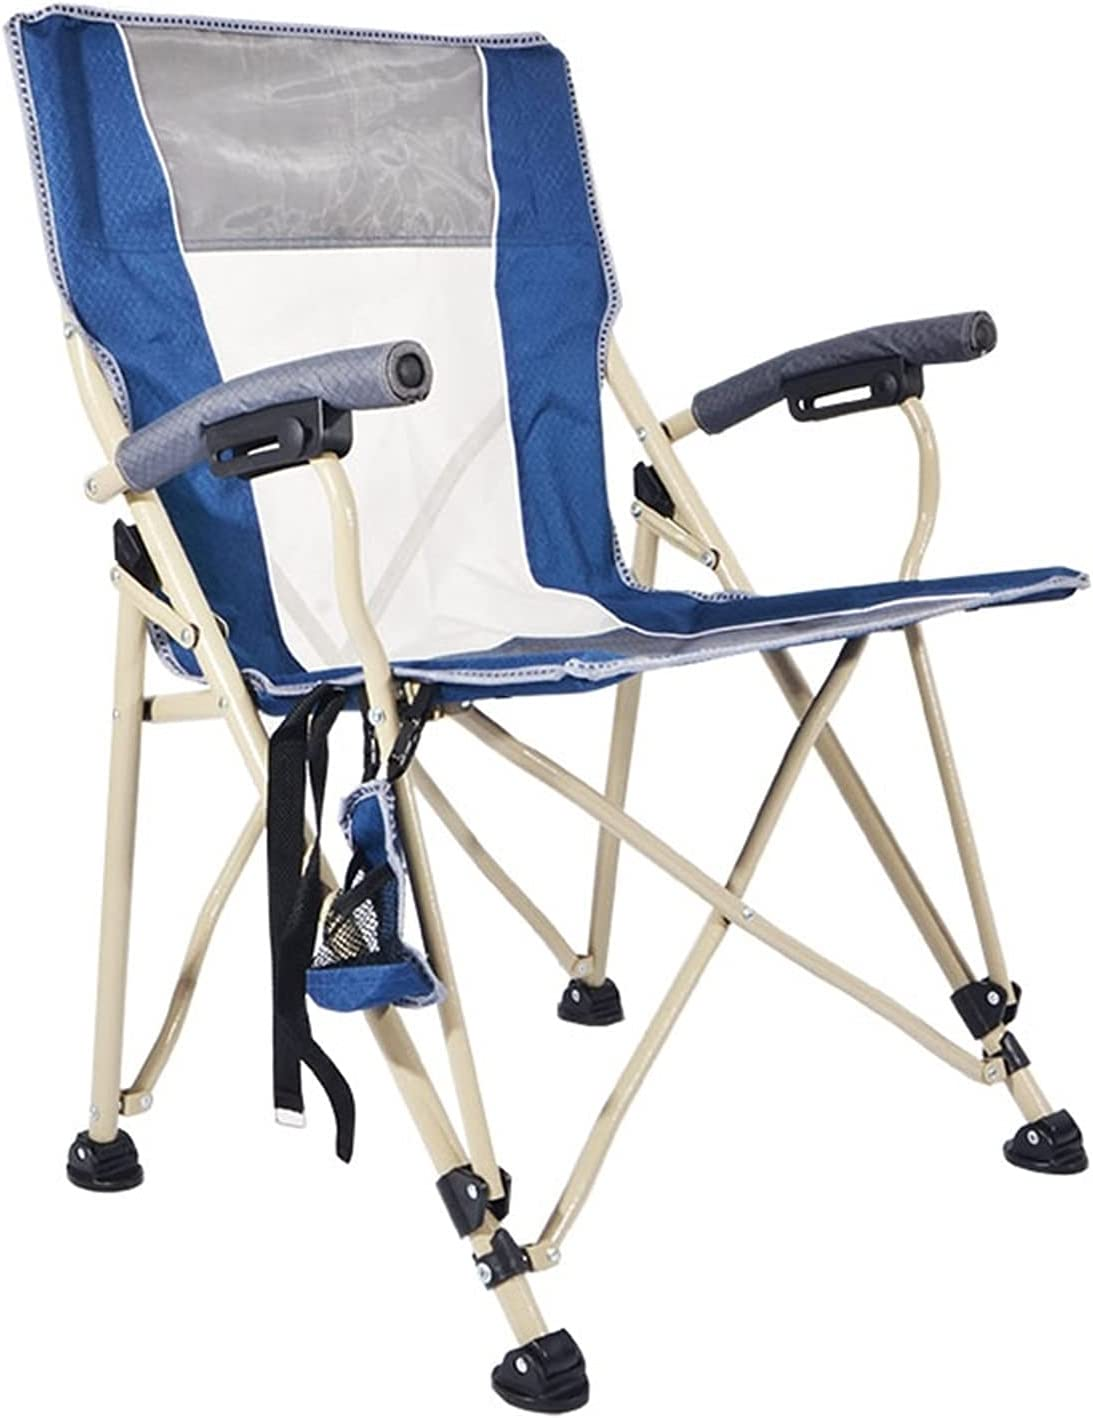 specialty shop Spring new work Tolalo Camping Chair Lightweight and F Outdoor Resistant Compact